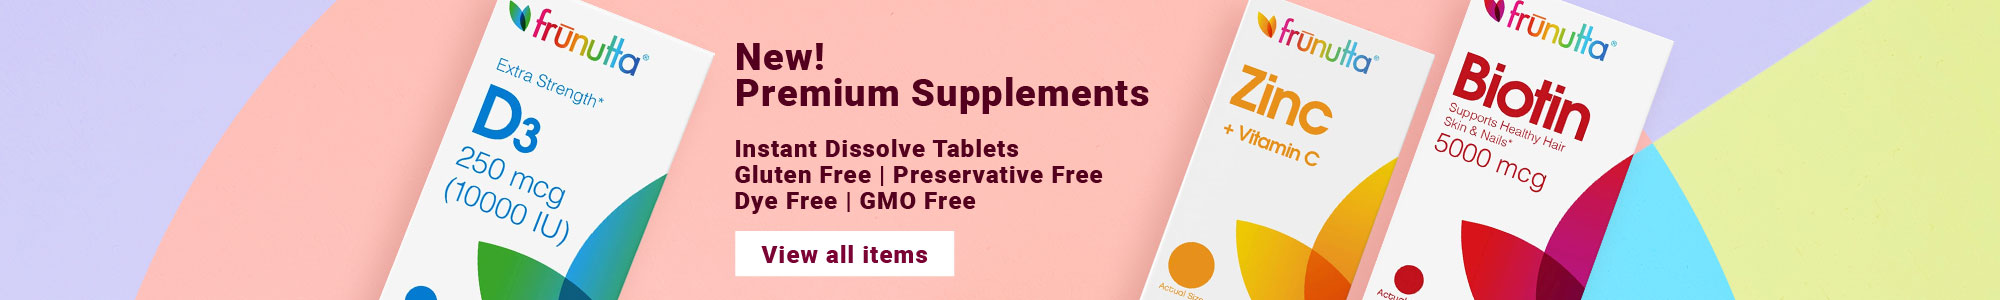 New! Premium Supplements Instant Dissolve Tablets Gluten Free, Preservative Free, Dye Free, GMO Free. View all items